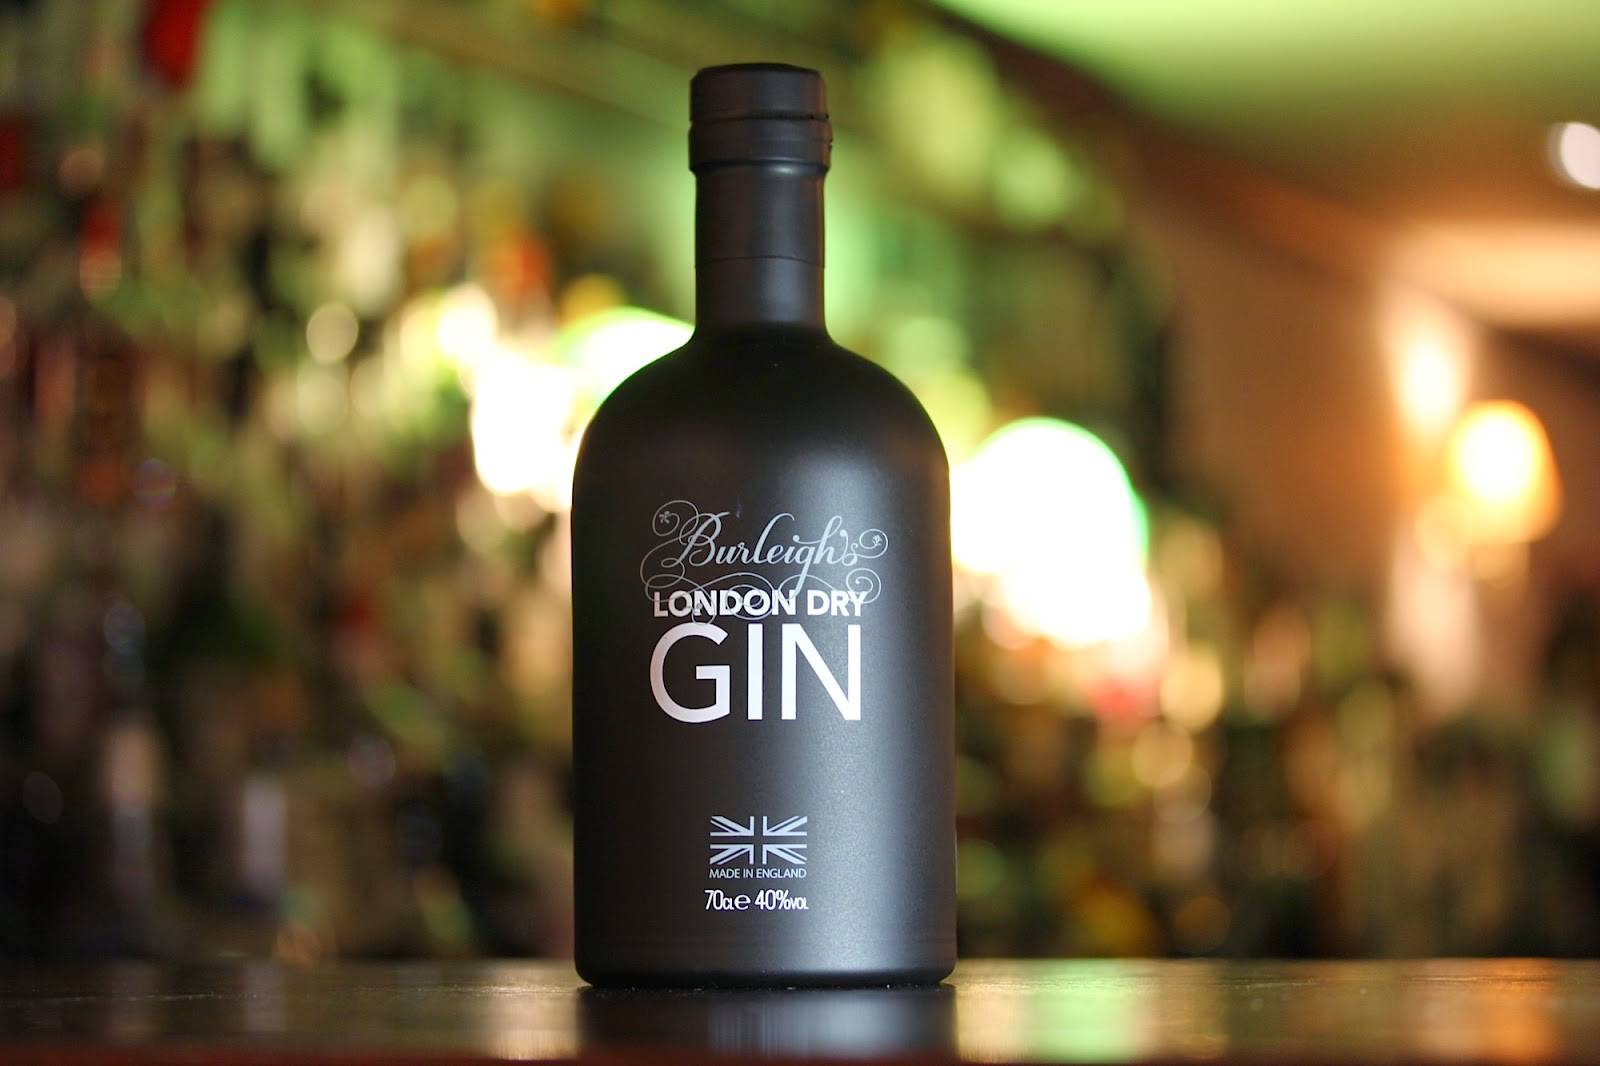 Burleighs Gin, Leicestershire, Gingey Bites